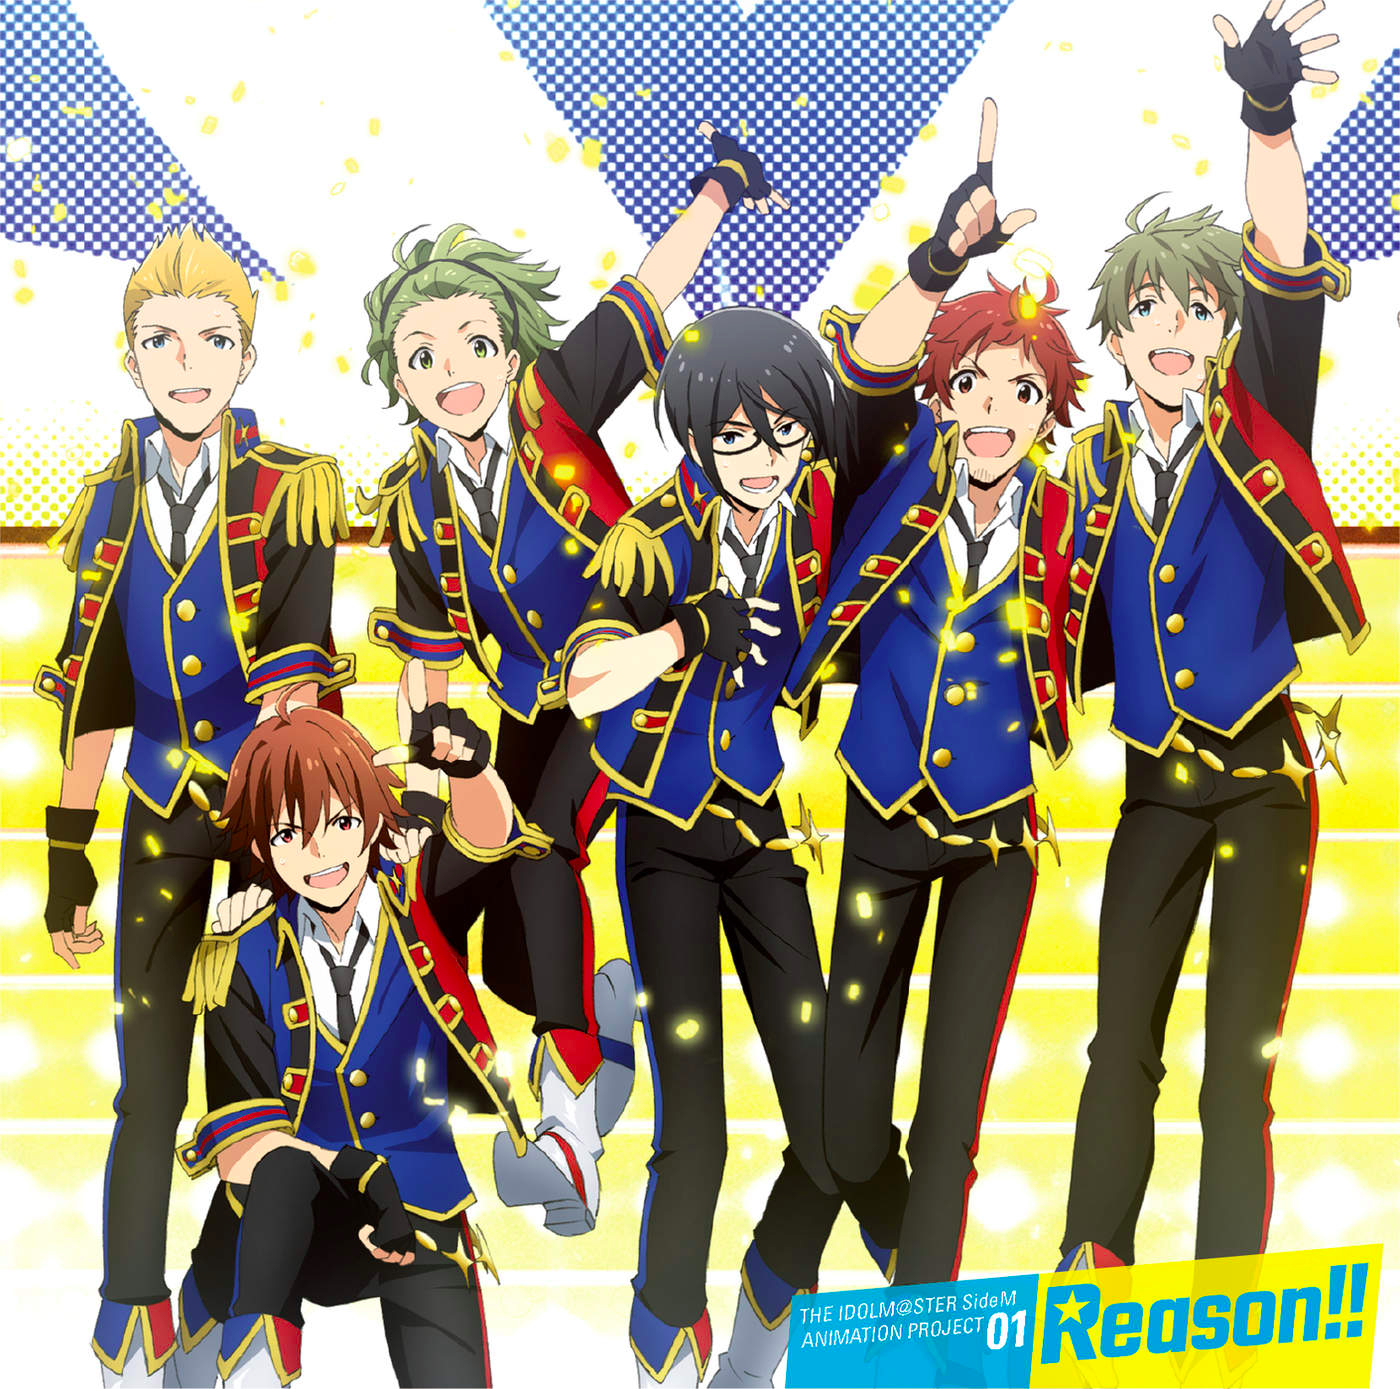 THE IDOLM@STER SideM ANIMATION PROJECT 01